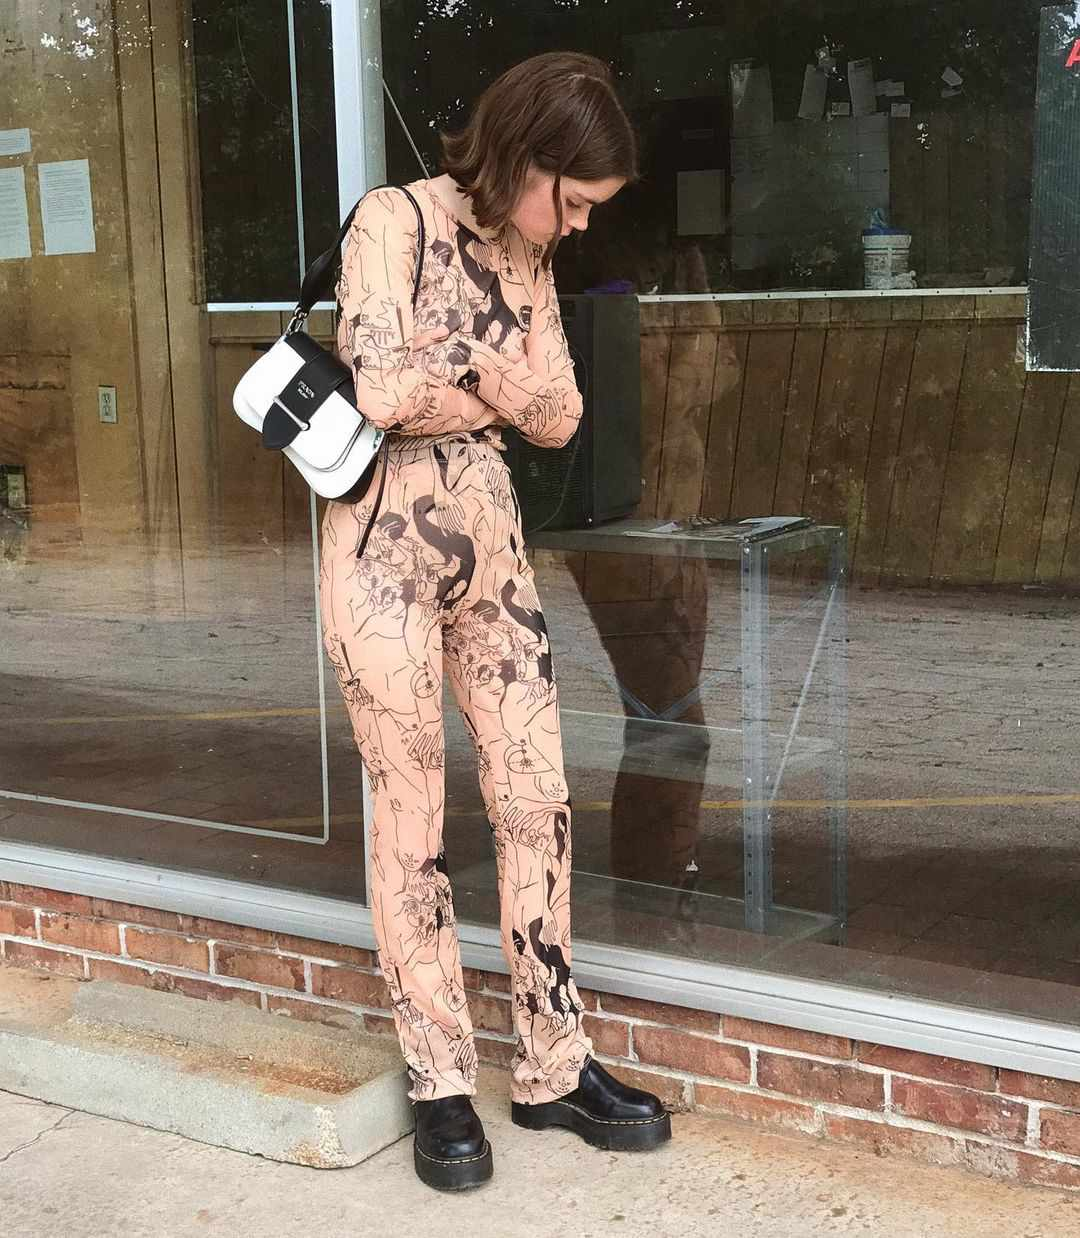 Dr. Martens Outfits Bodysuit Reese Blutstein Street Style